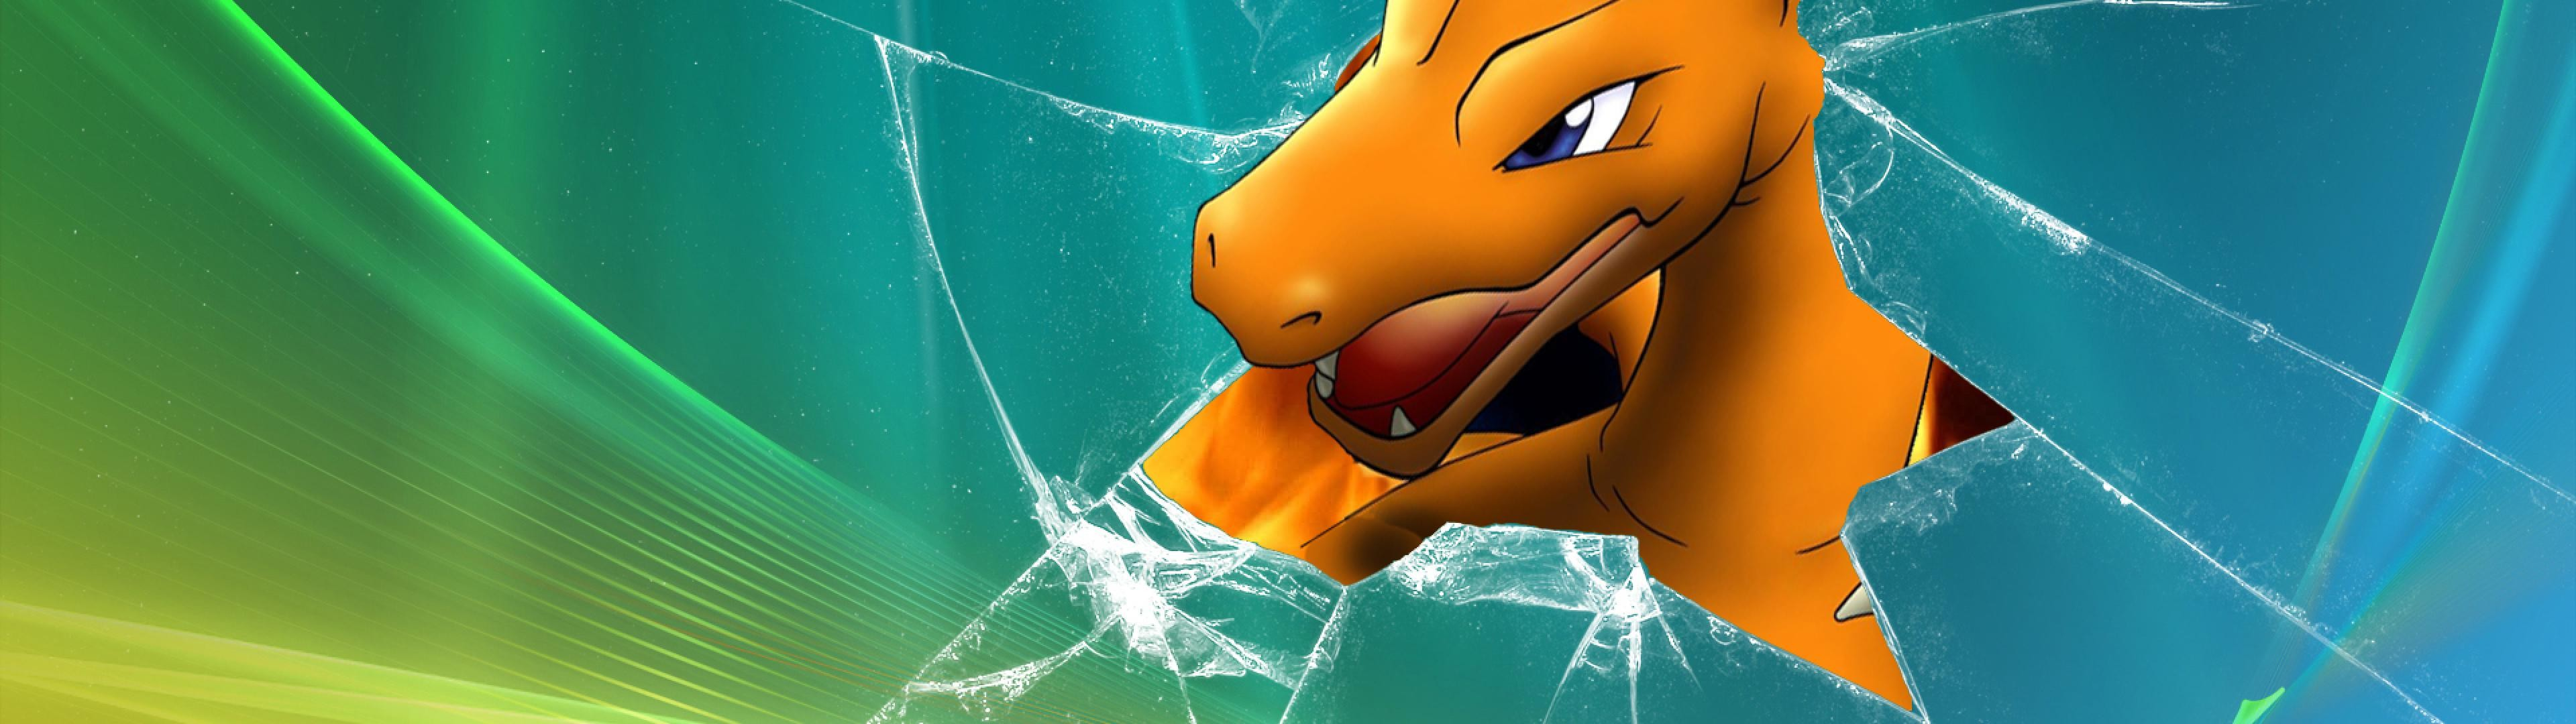 3840x1080 pokemon_vista_broken_screen_charizard_desktop_1920x1080_wallpaper ...  pokemon_vista_broken_screen_charizard_desktop_1920x1080_wallpaper .